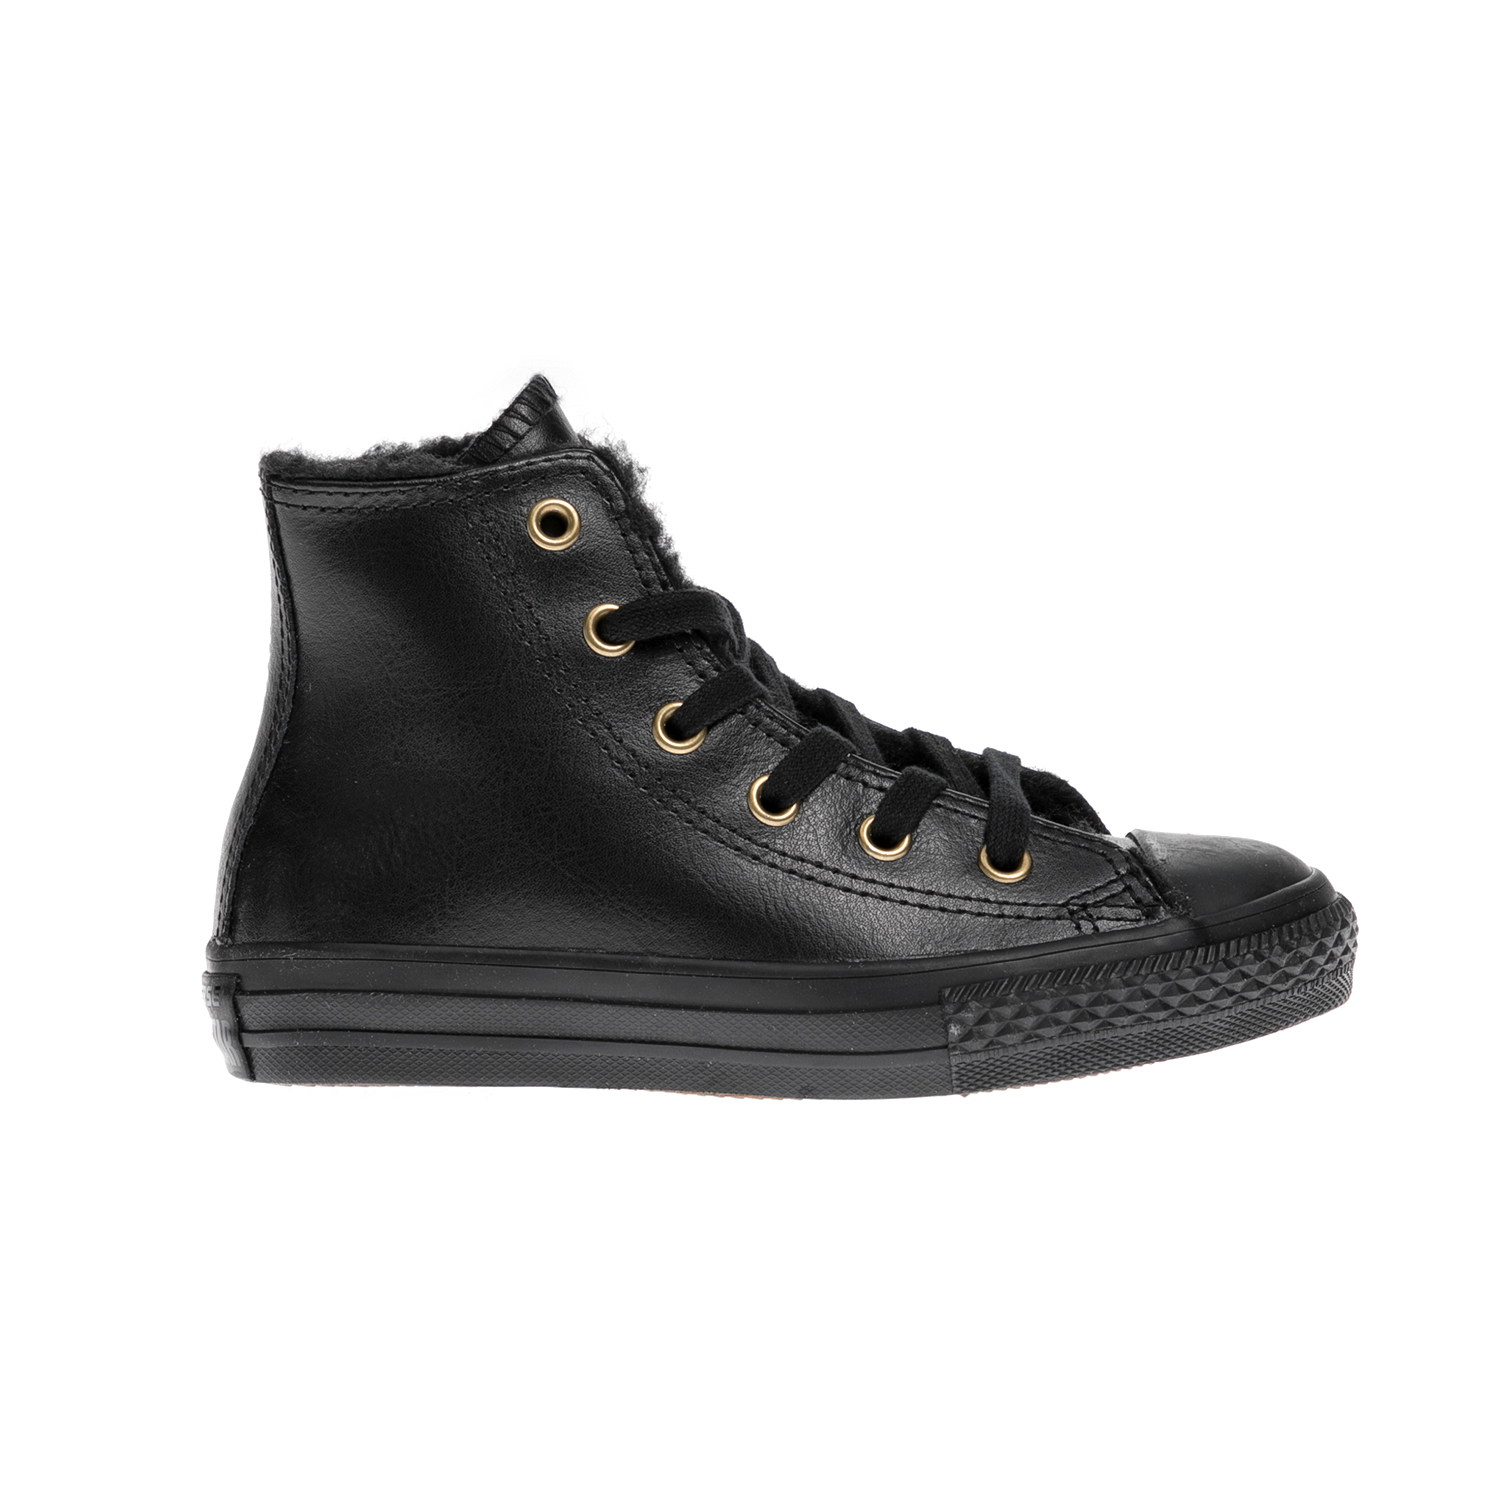 79c56581c0c -30% Factory Outlet CONVERSE – Παιδικά μποτάκια Chuck Taylor All Star Hi  μαύρα